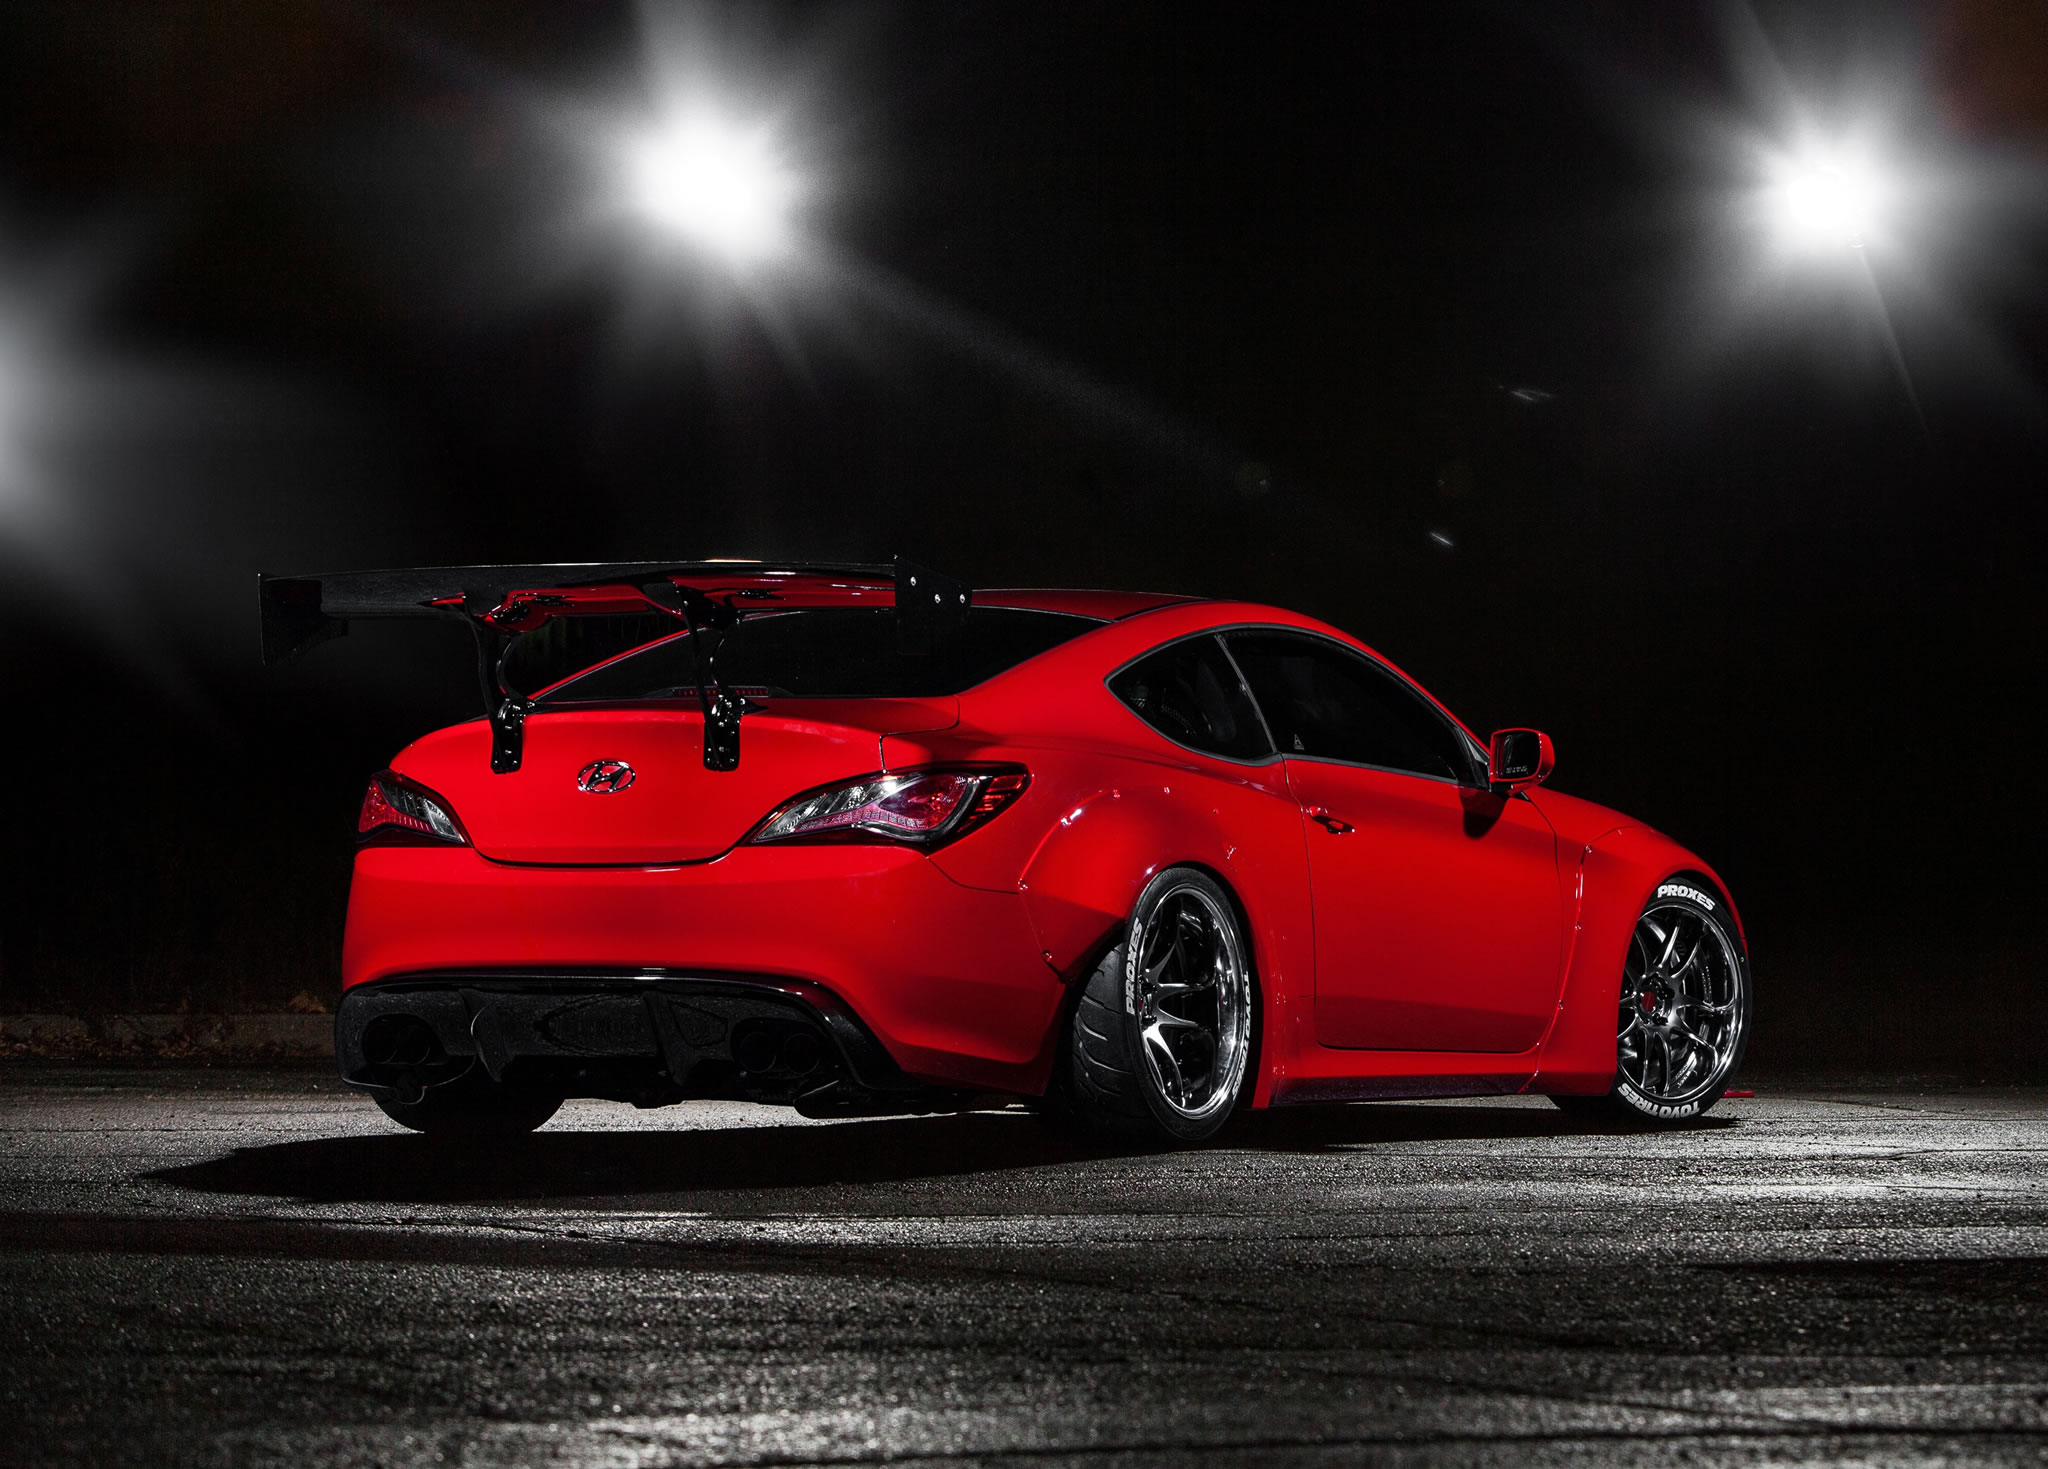 2014 hyundai genesis coupe by blood type racing rear photo red color size 2048 x 1469 nr 9. Black Bedroom Furniture Sets. Home Design Ideas